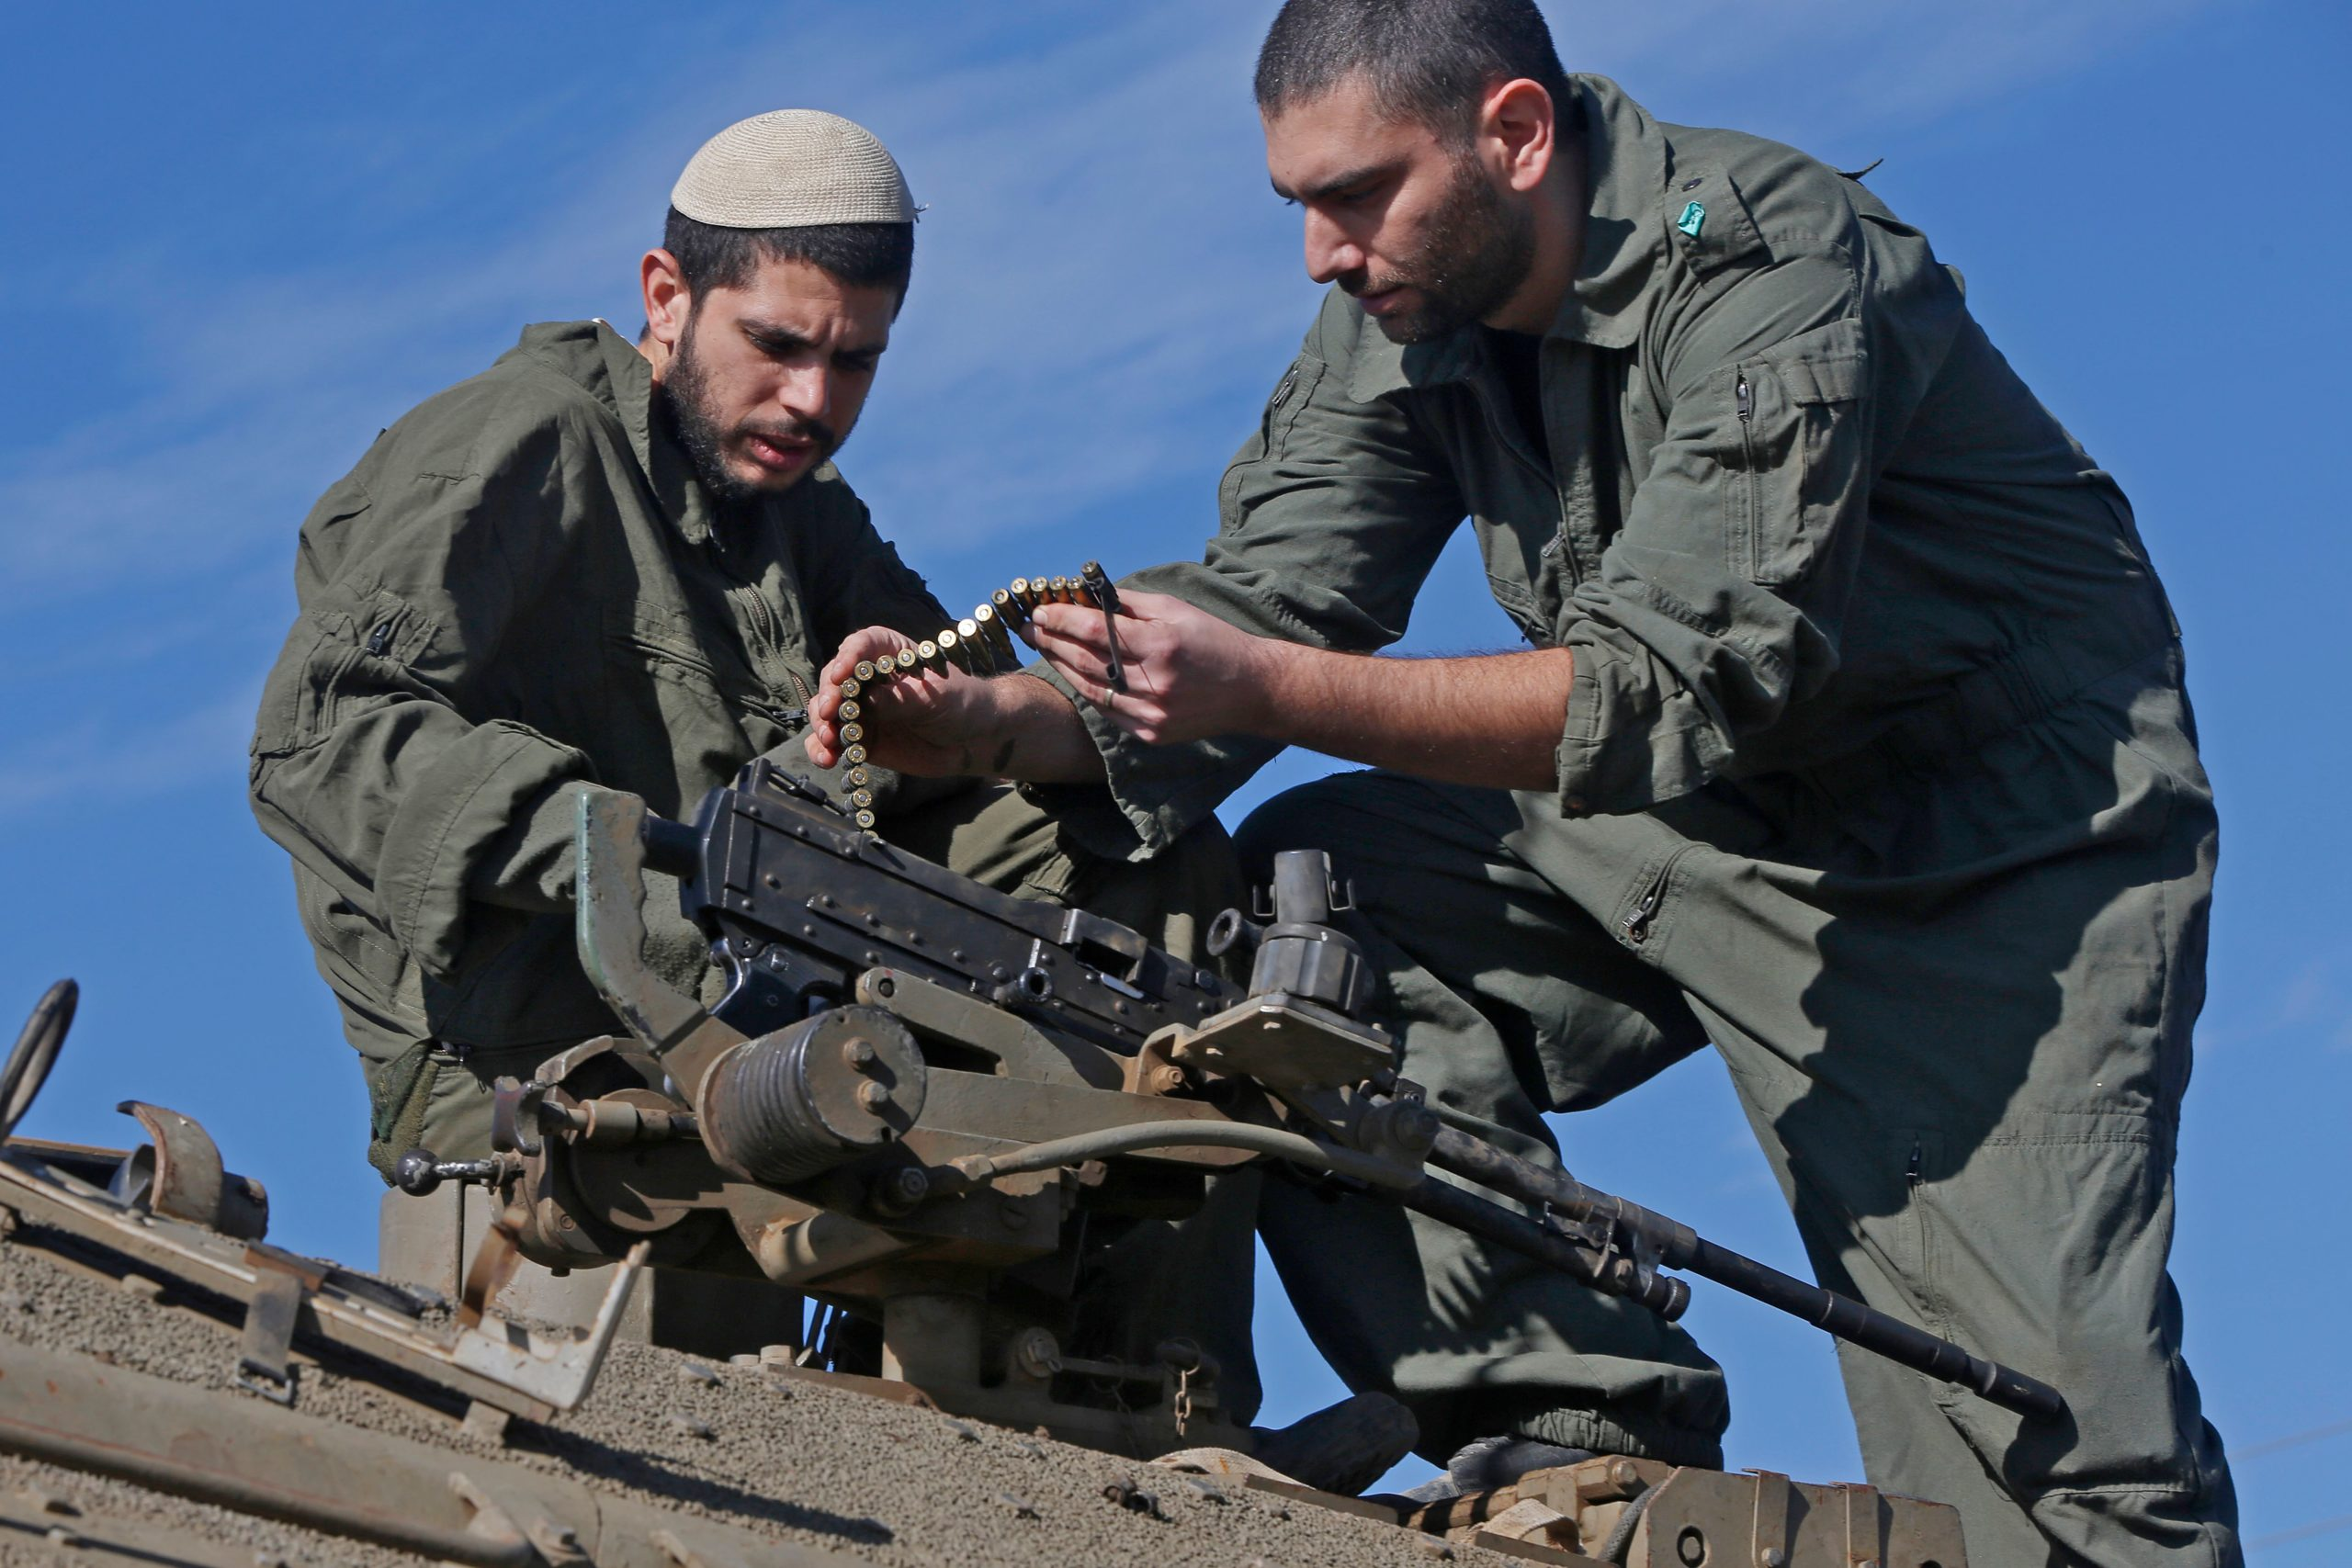 A picture taken on November 25, 2020 shows Israeli soldiers preparing a tank near the Israel-Syria border, in the Israeli-annexed Golan Heights. - Israeli air strikes in Syria overnight killed at least eight fighters operating in pro-Iran militias, a war monitoring group said. The strikes targeted an arms depot and a position held by Iranian forces and their Lebanese ally Hezbollah near the capital Damascus, and a pro-Iran militia position in southern Syria, the Syrian Observatory for Human Rights said. (Photo by JALAA MAREY / AFP) (Photo by JALAA MAREY/AFP via Getty Images)